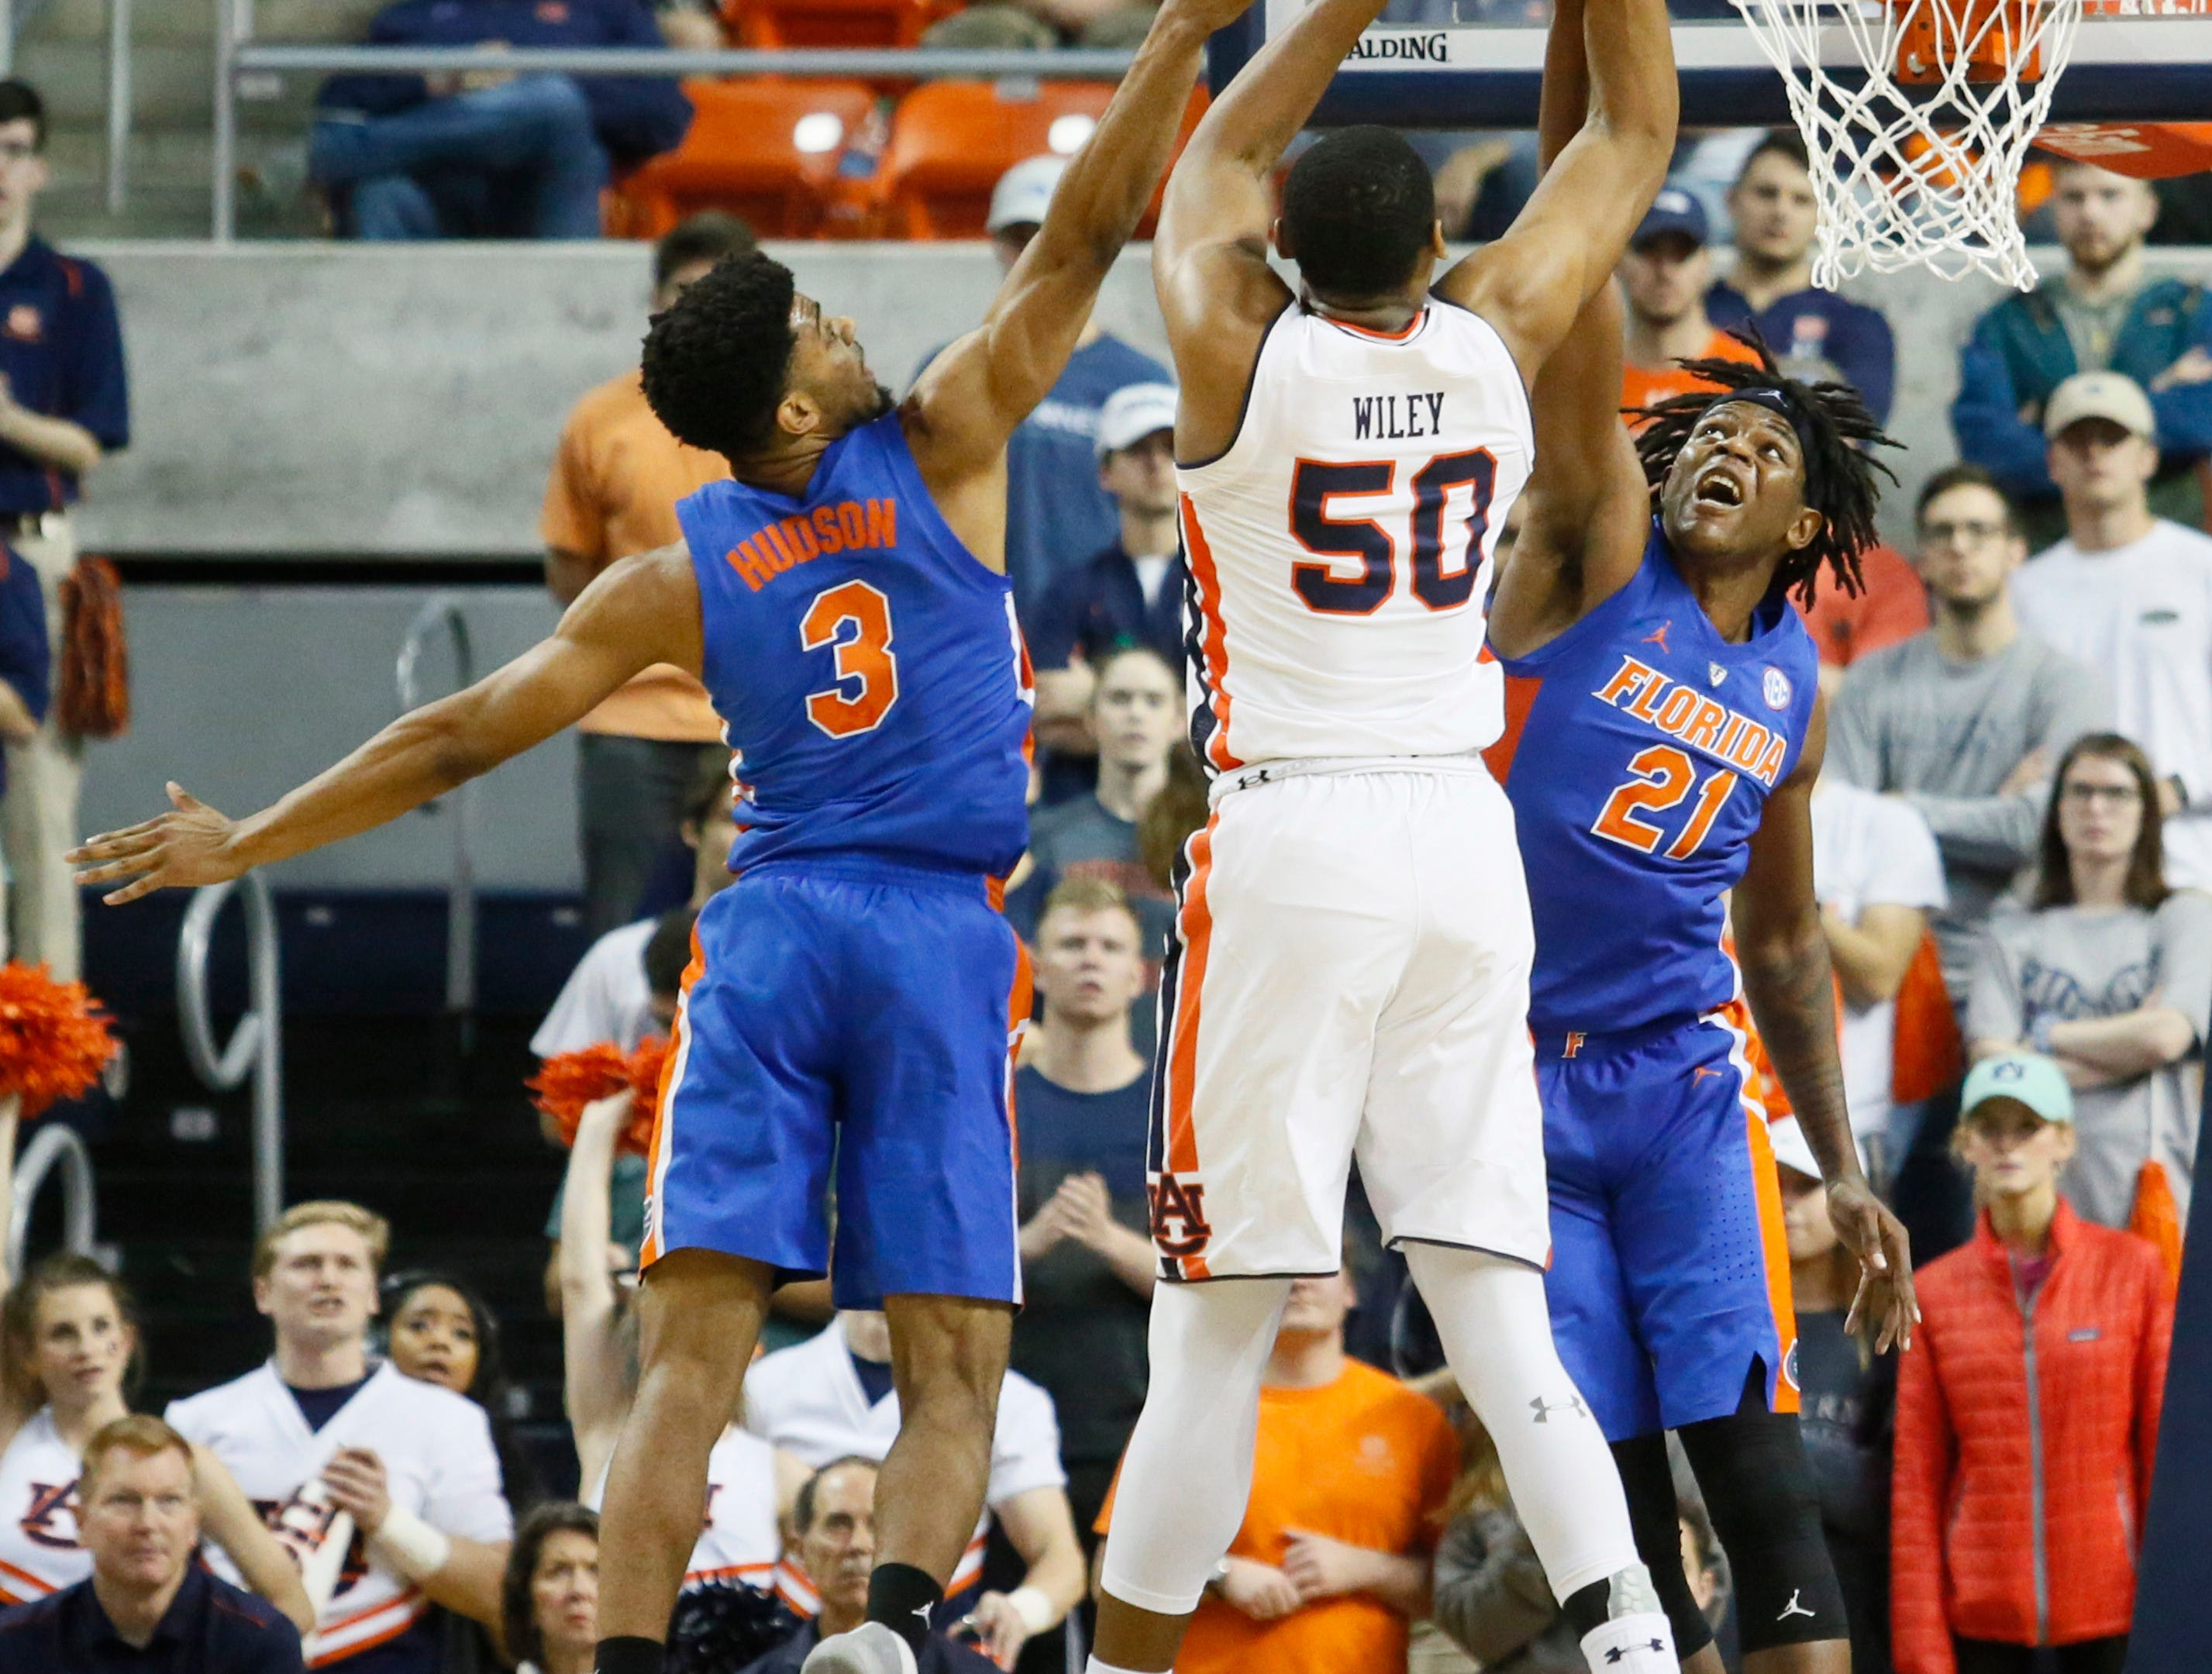 Feb 5, 2019; Auburn, AL, USA; Florida Gators guard Jalen Hudson (3) and forward Dontay Bassett (21) try to block the shot of Auburn Tigers center Austin Wiley (50) during the first half at Auburn Arena. Mandatory Credit: John Reed-USA TODAY Sports